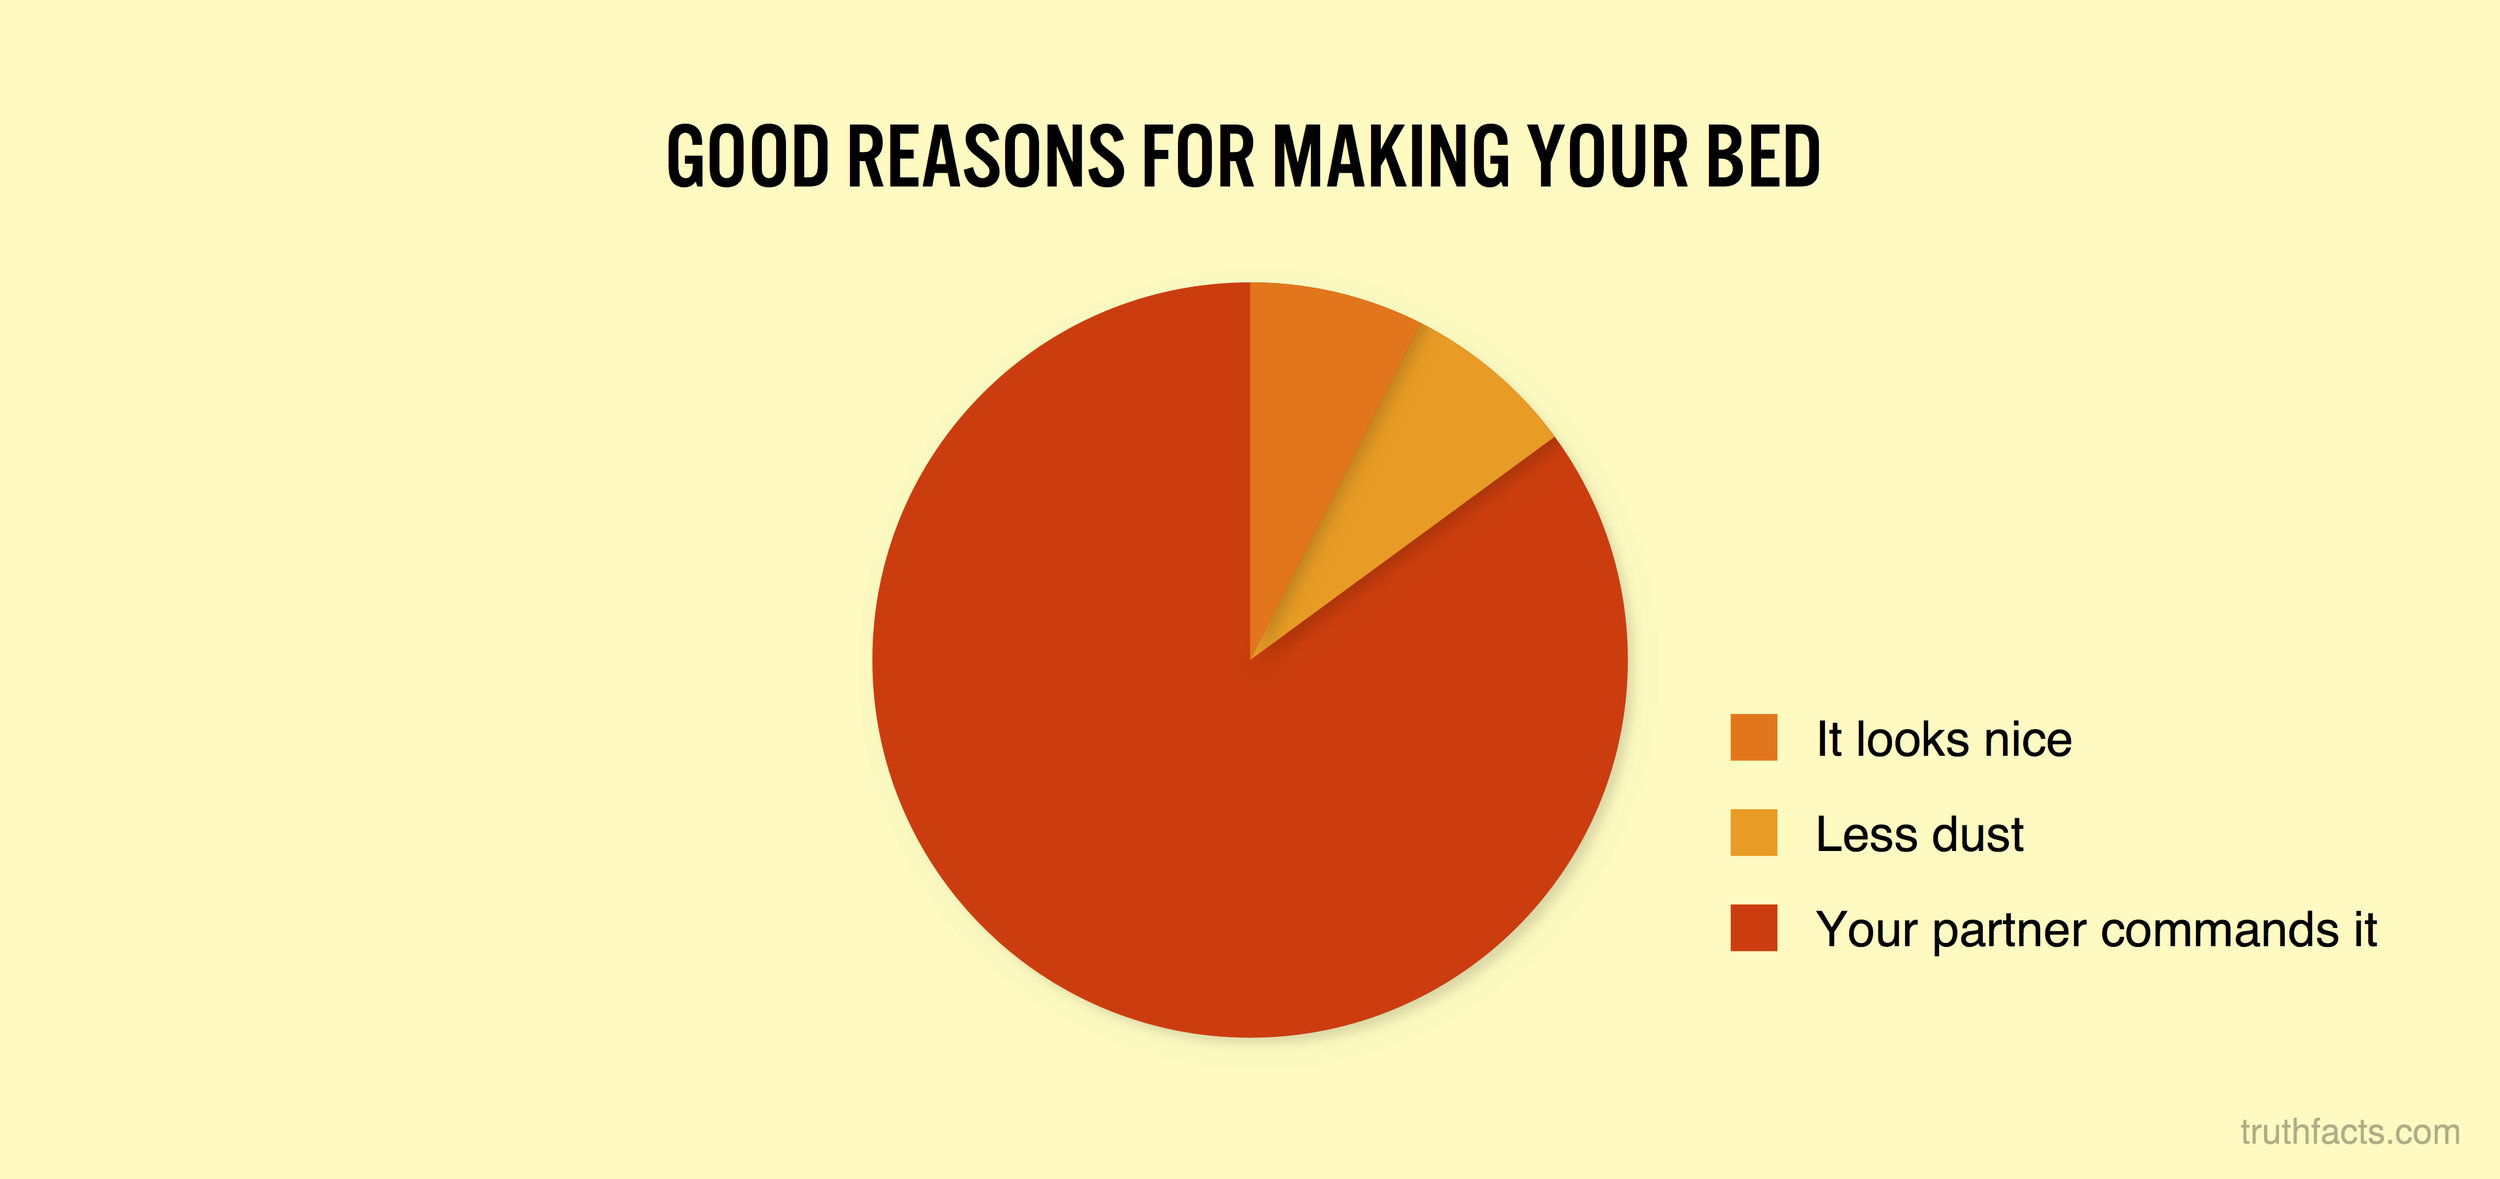 Good reasons for making your bed